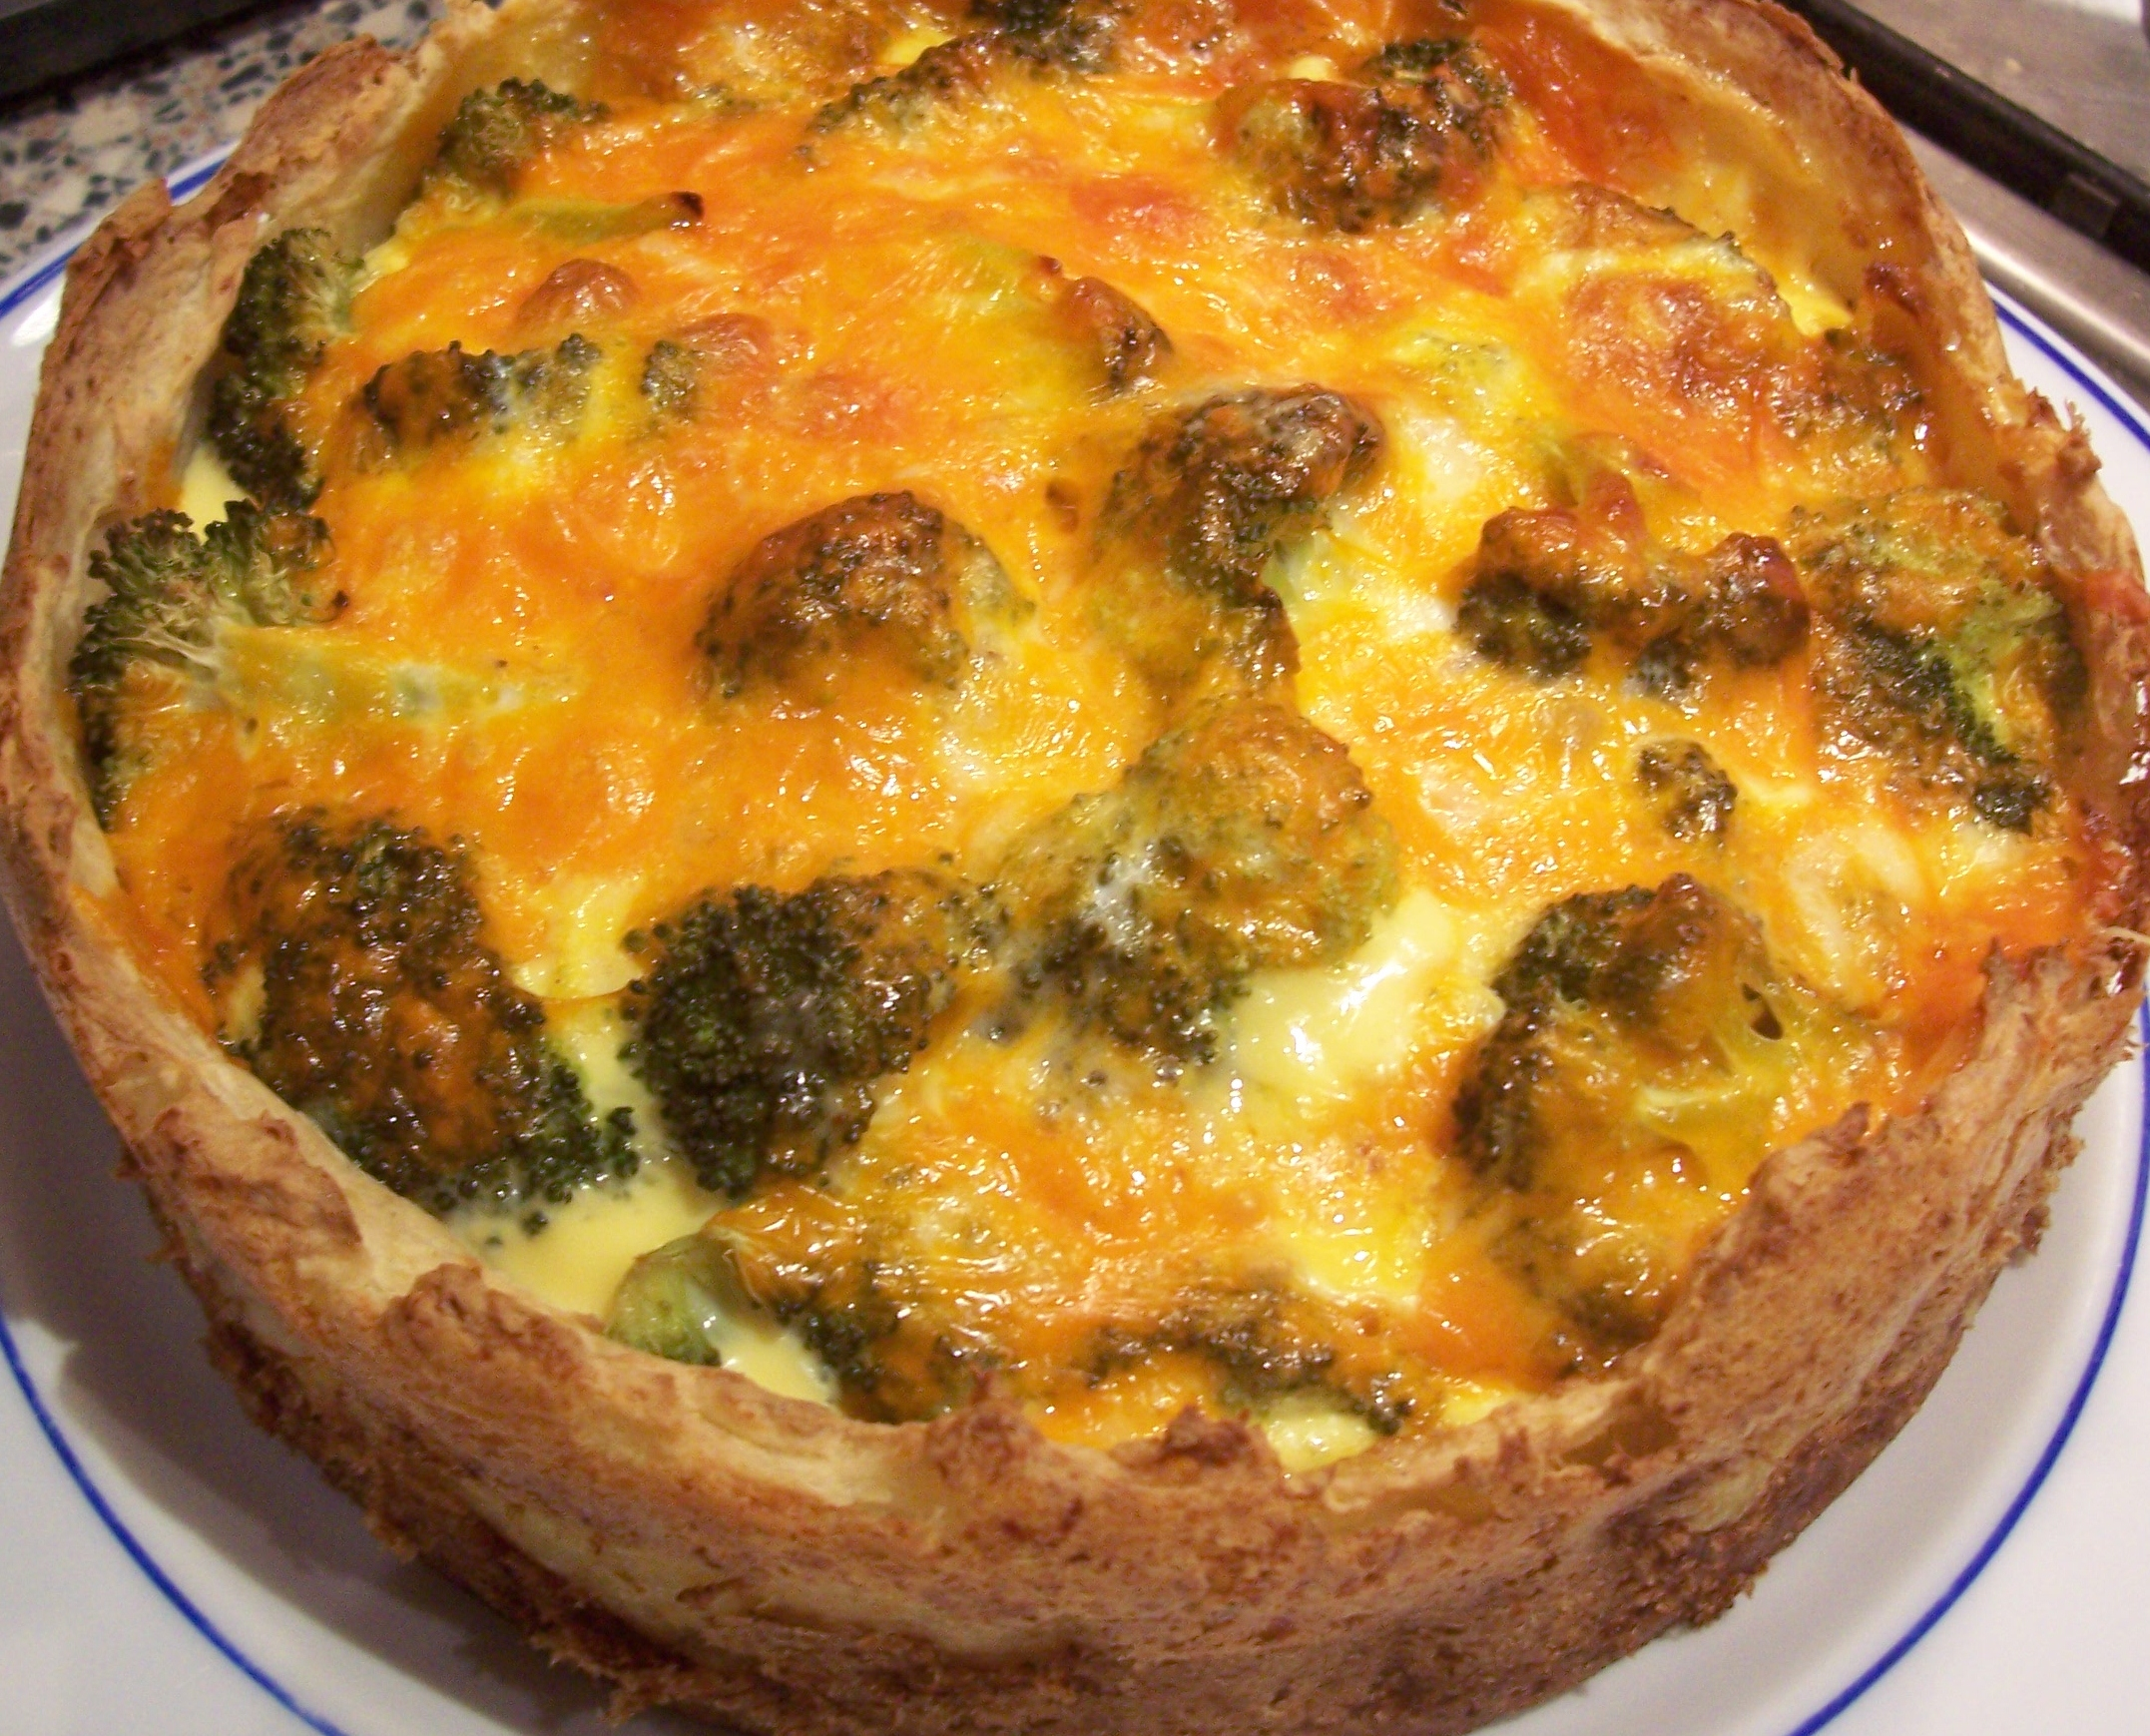 ... crust tofu quiche with broccoli broccoli quiche with mashed potato